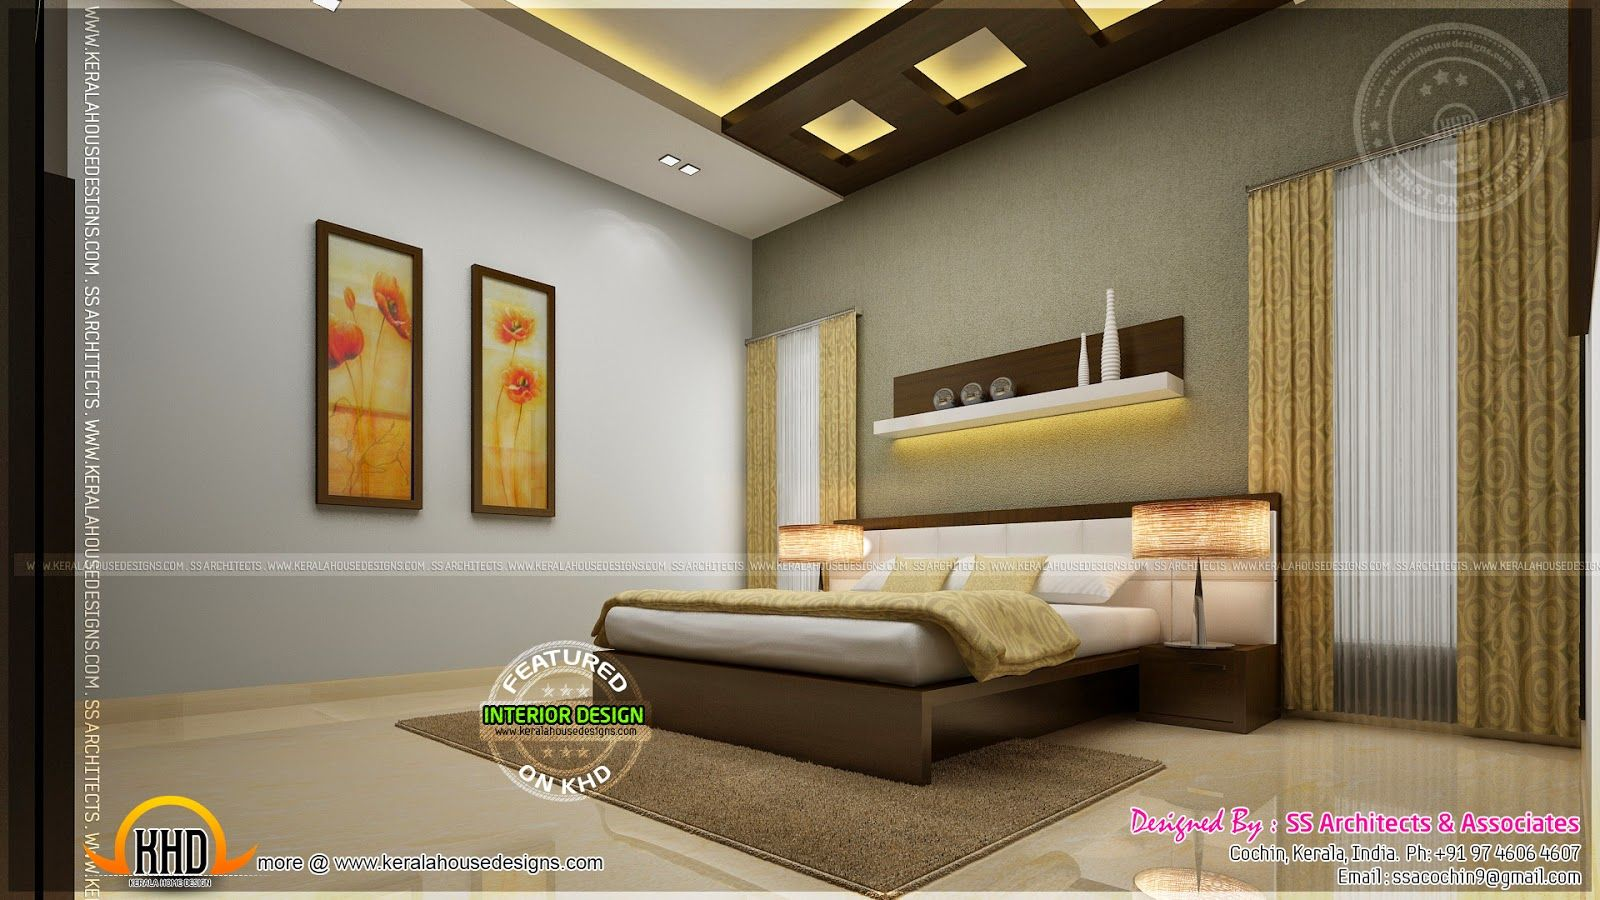 Indian master bedroom interior design google search saravanan bella vista pinterest Latest design for master bedroom